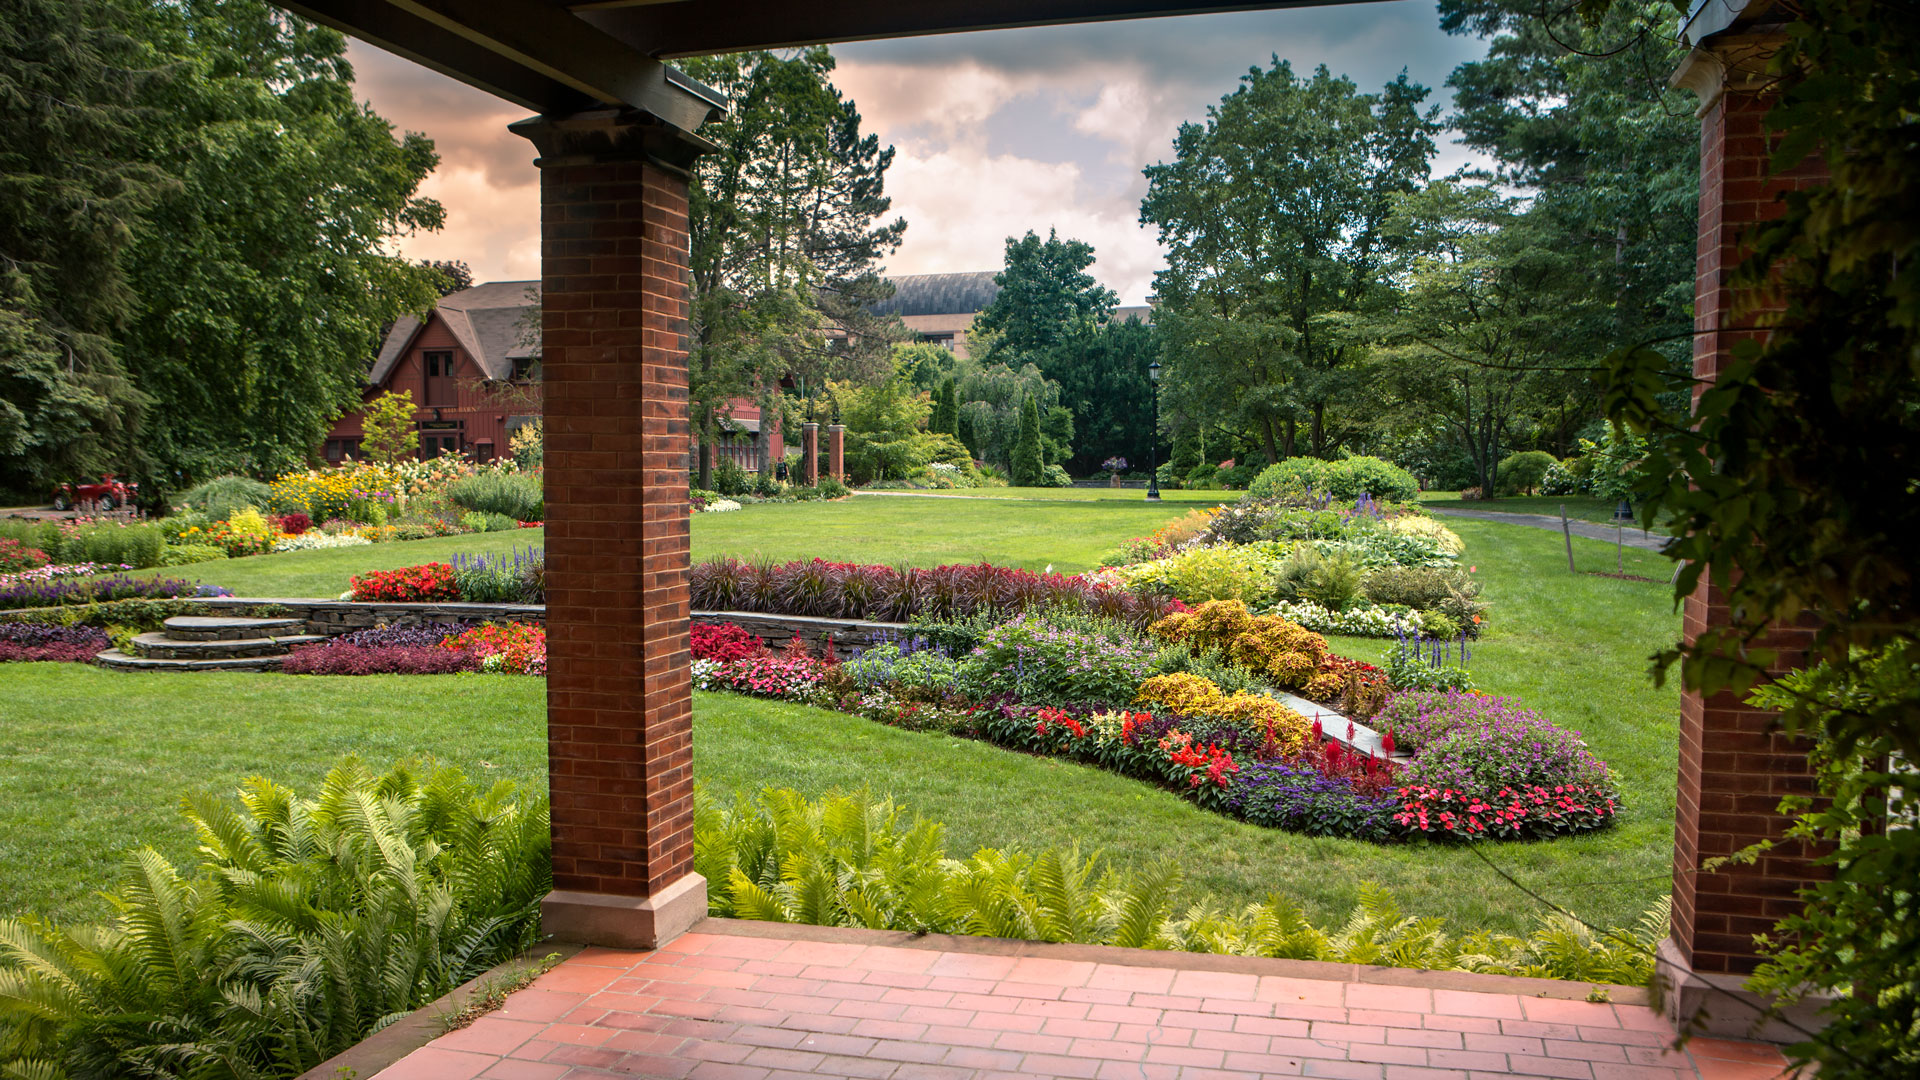 One of the gardens behind A.D. White House.